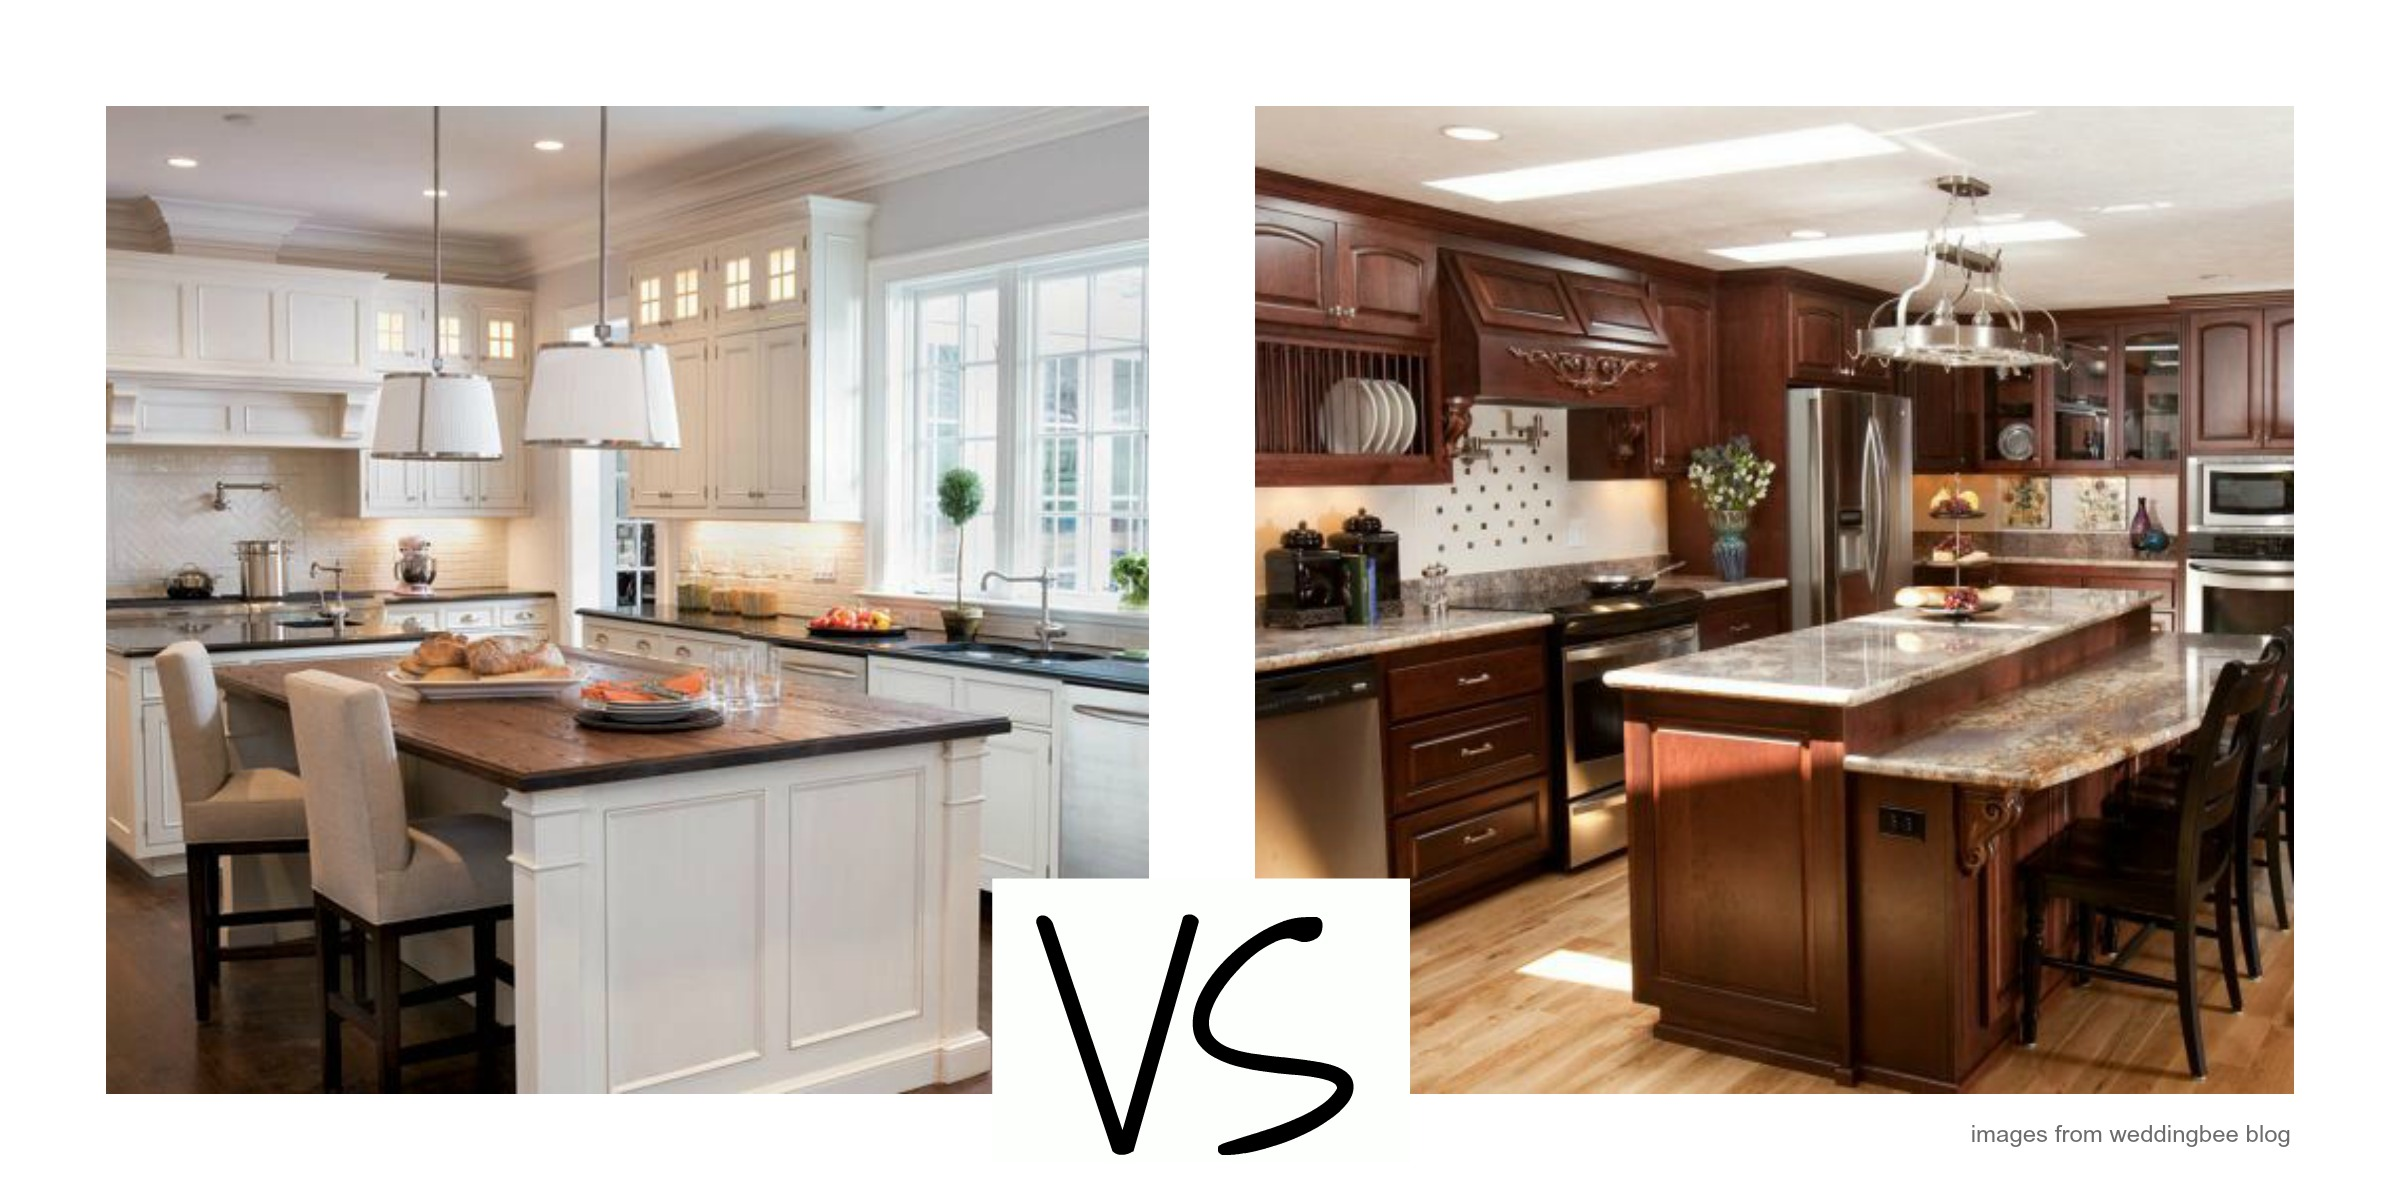 Images Of How To Stain Kitchen Cabinets White Home And Décor . Full resolution‎  pic, nominally Width 2400 Height 1200 pixels, pic with #331D12.